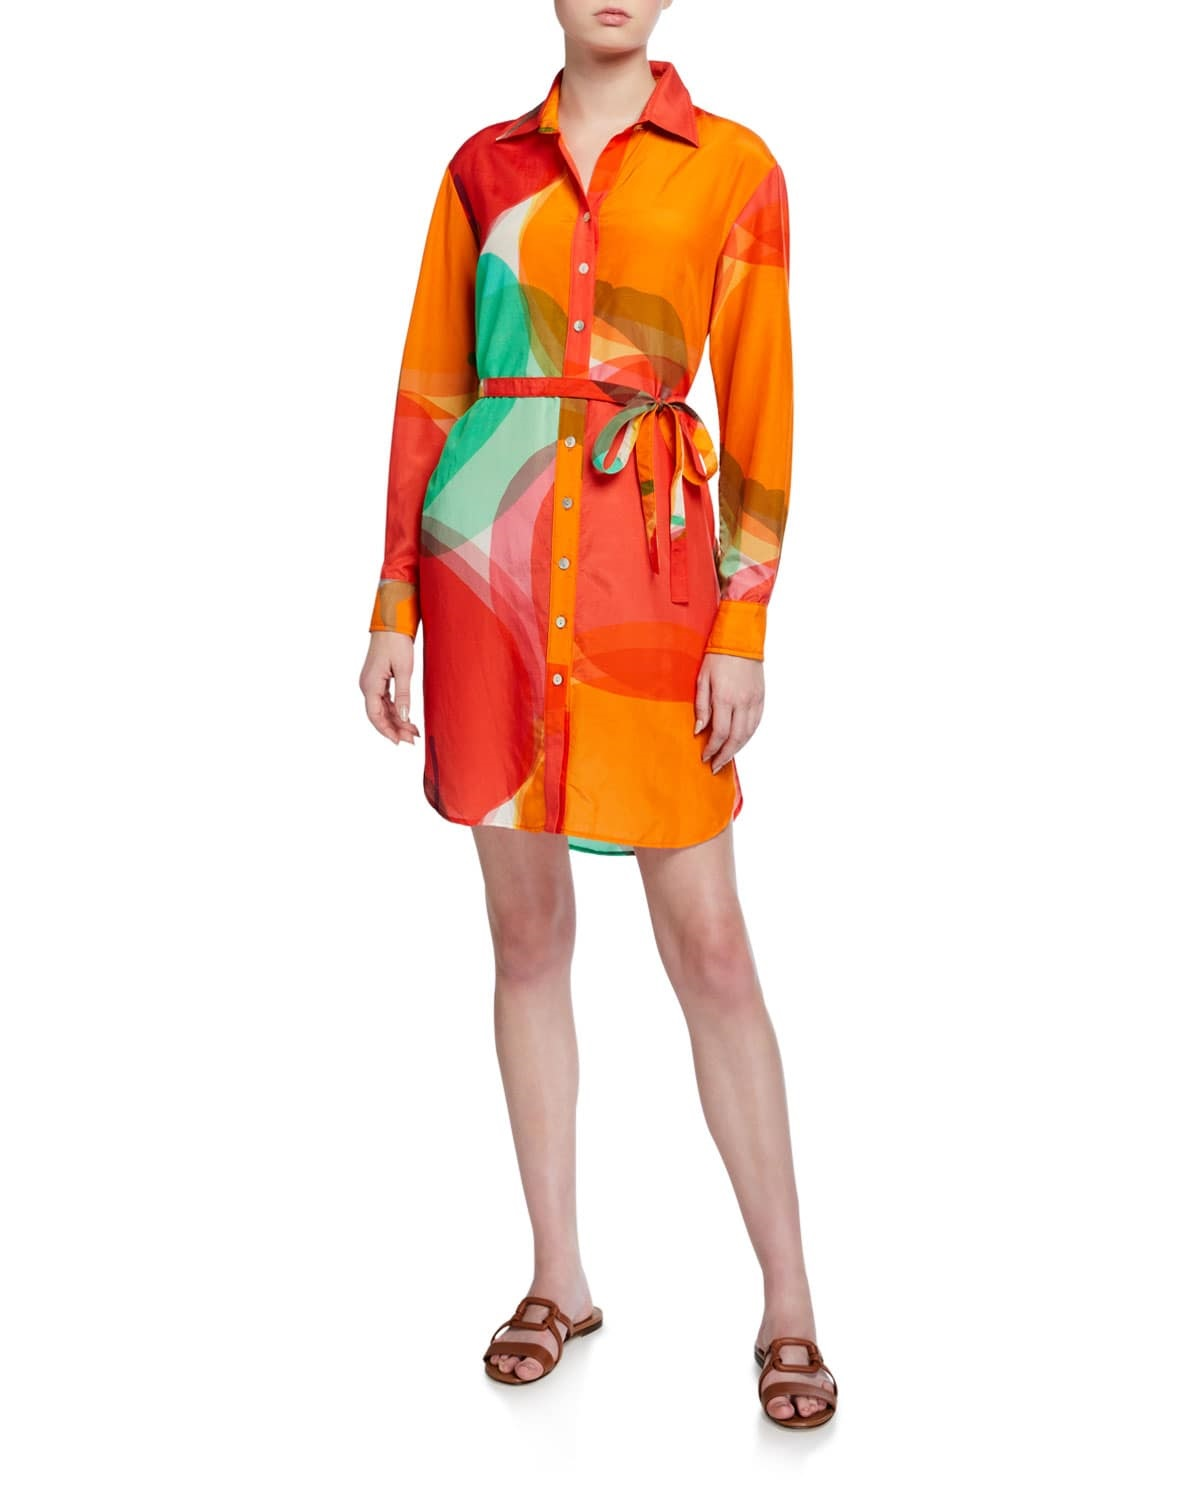 Sunny and Stylish Labor Day Weekend Outfits, Finley Carter Abstract Apple Shirt Dress with waist tie